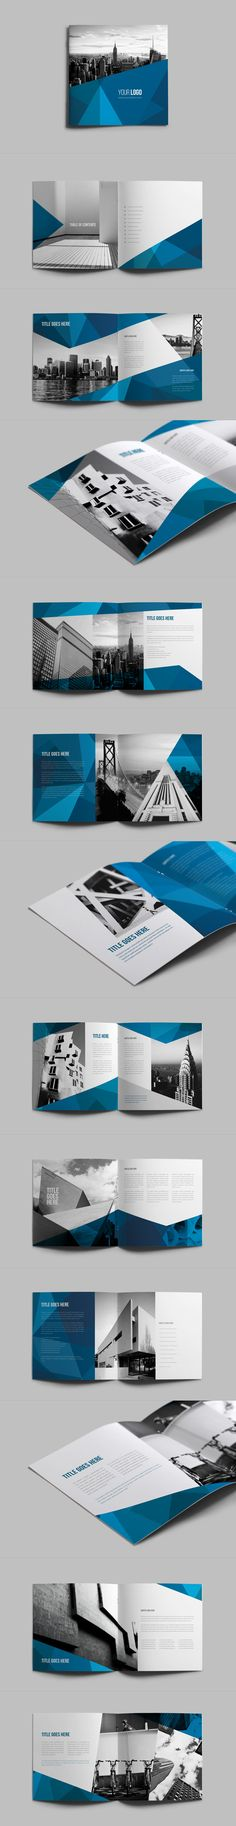 Square Abstract Architecture Brochure on Behance